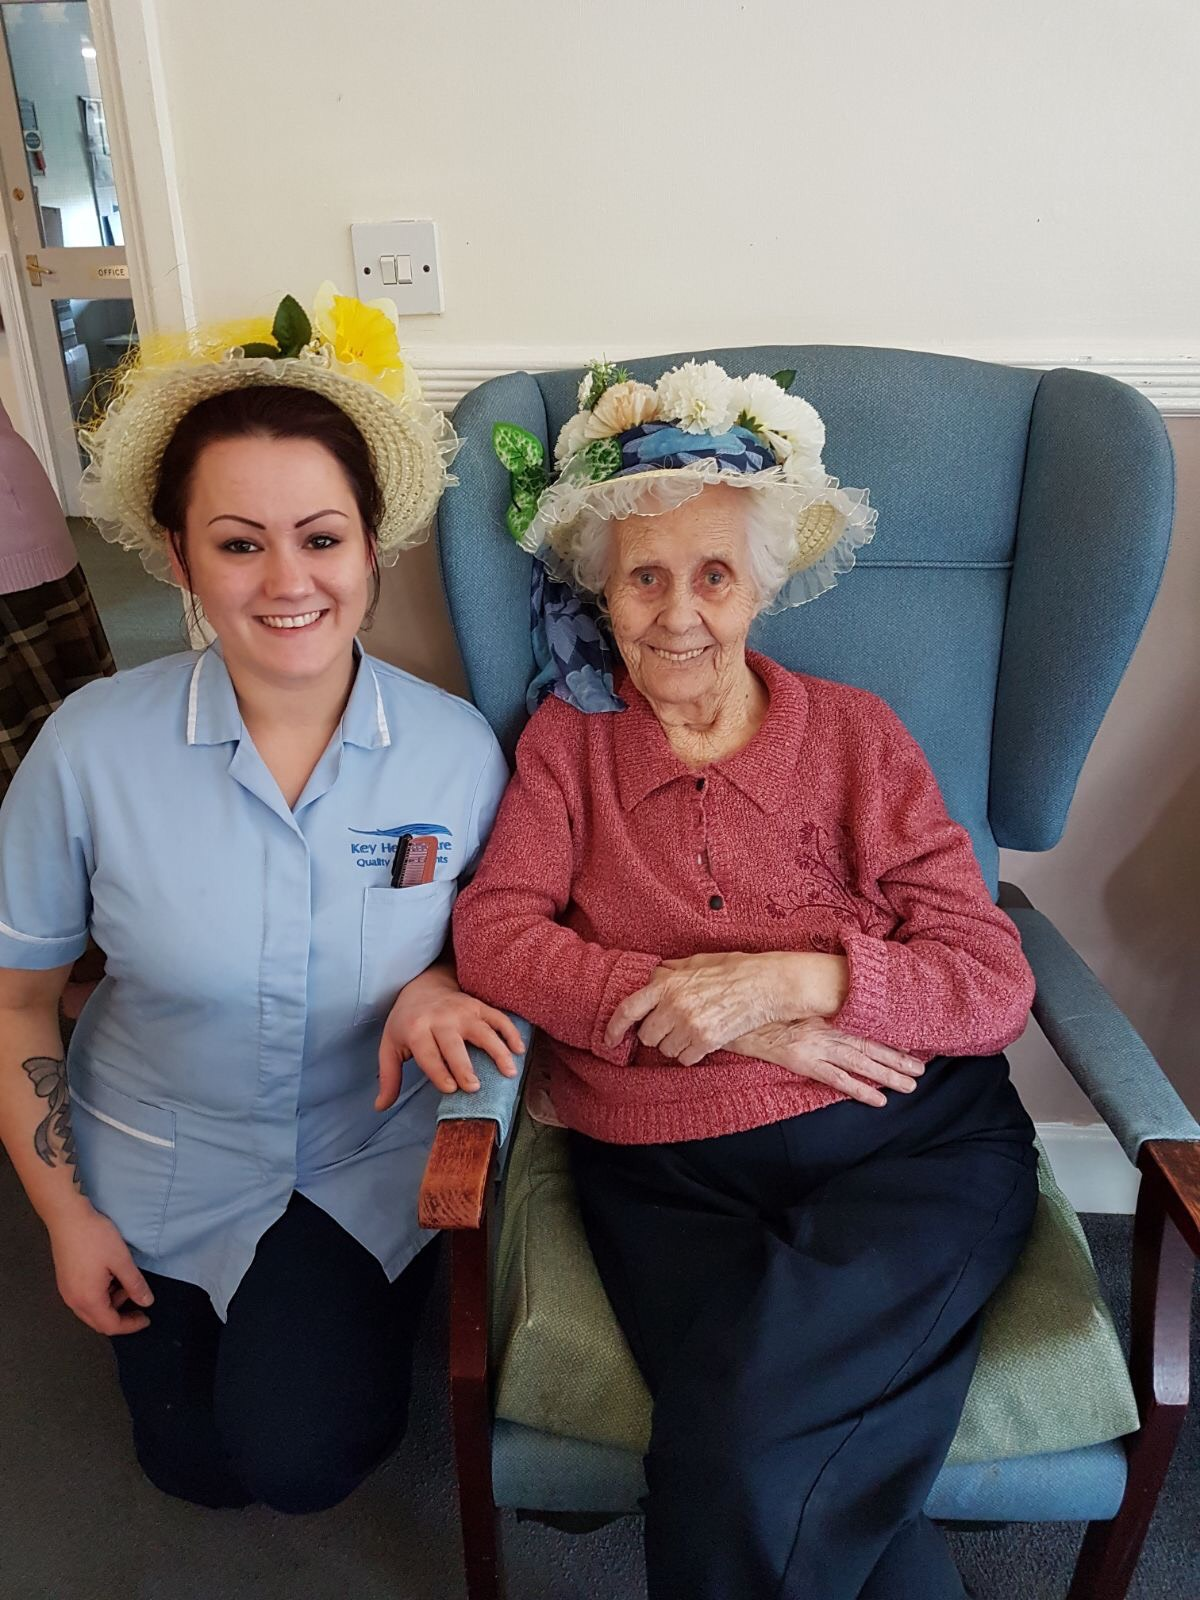 Easter Bonnets 2017: Key Healthcare is dedicated to caring for elderly residents in safe. We have multiple dementia care homes including our care home middlesbrough, our care home St. Helen and care home saltburn. We excel in monitoring and improving care levels.